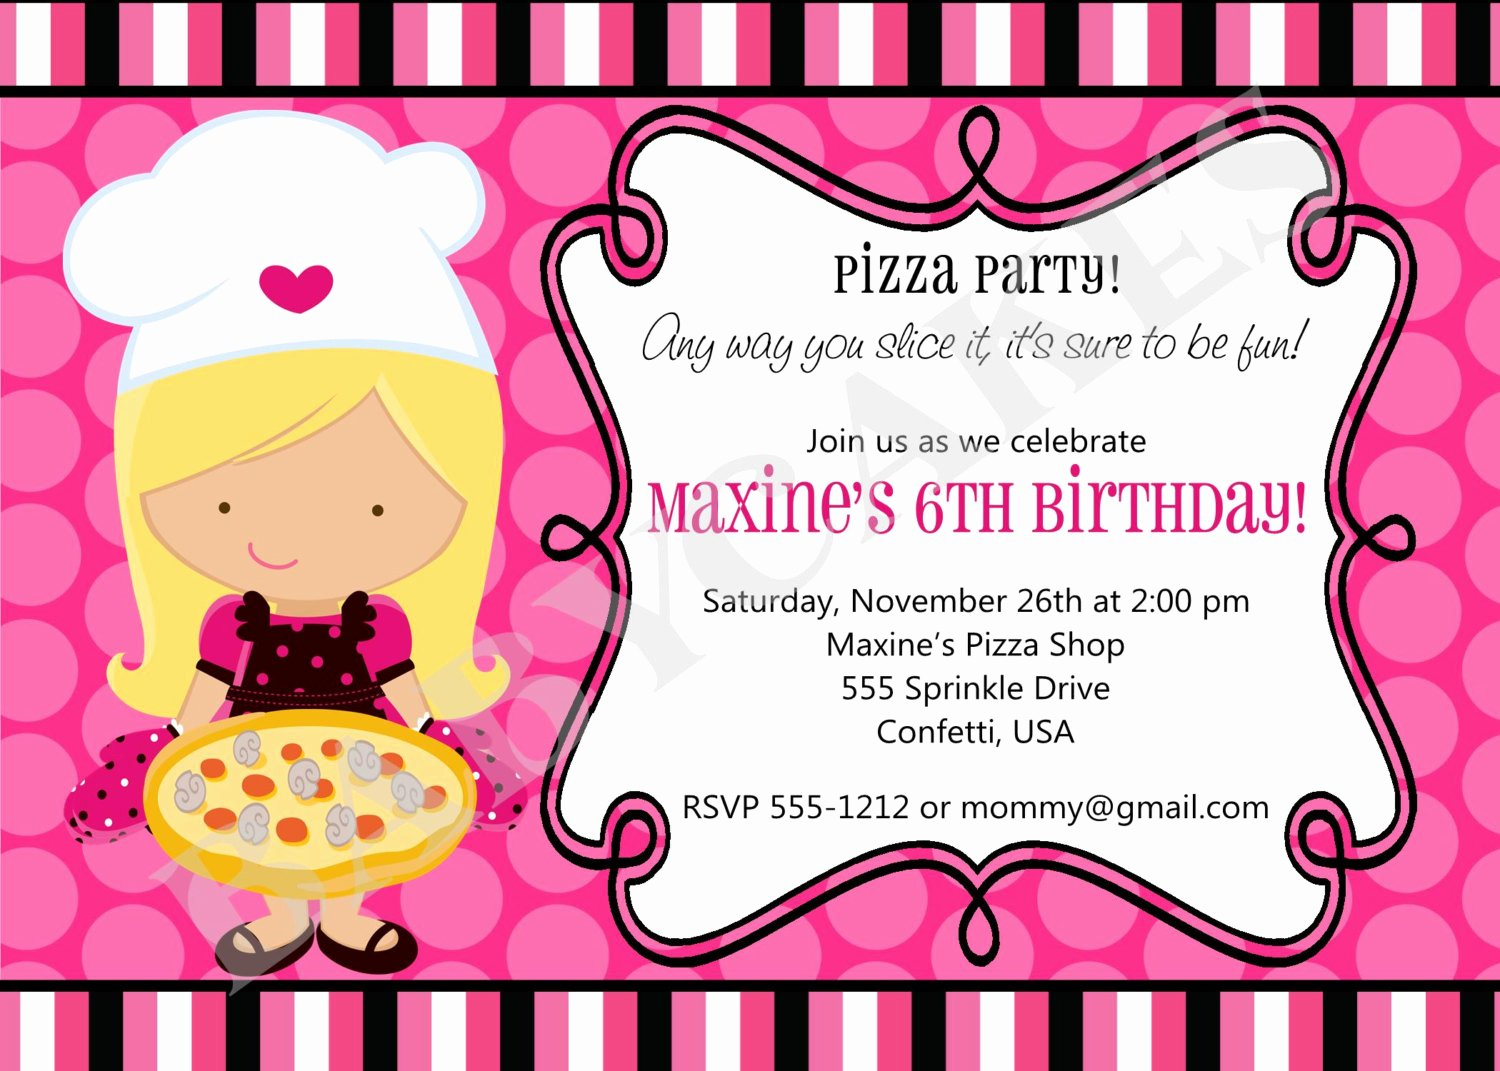 Pizza Party Invitations Template New Printable Pizza Party Invitations